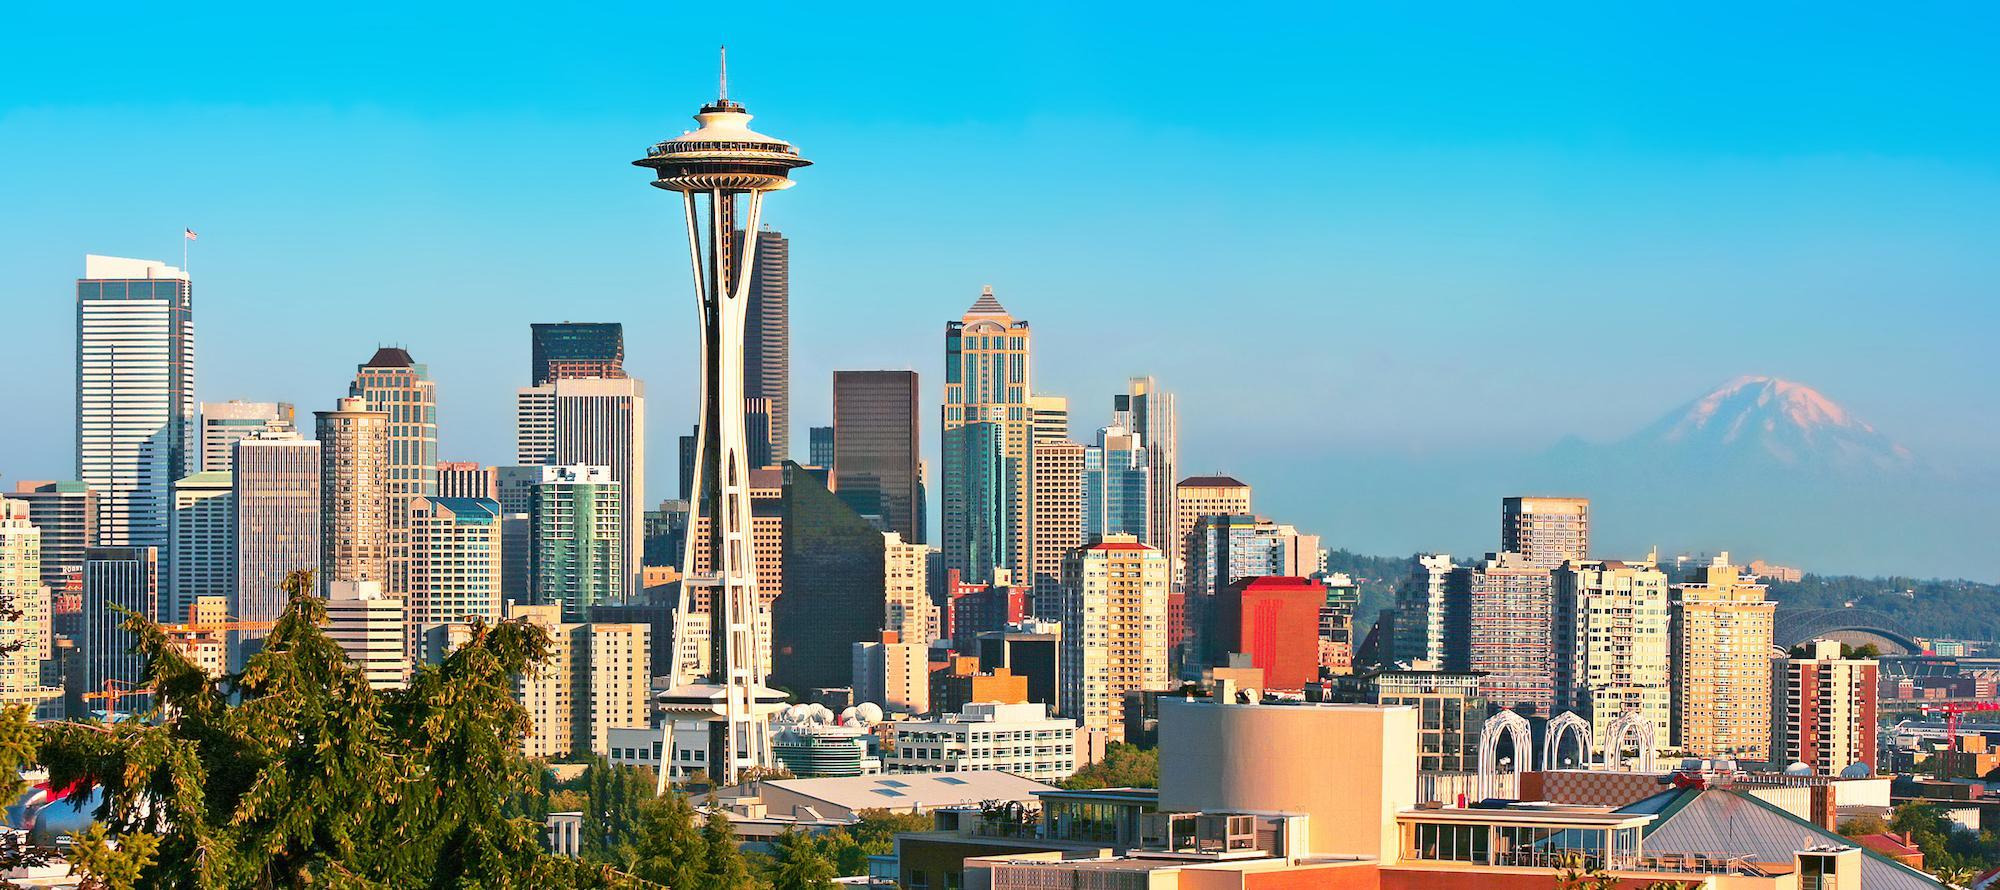 How to Spend 1 Day in Seattle